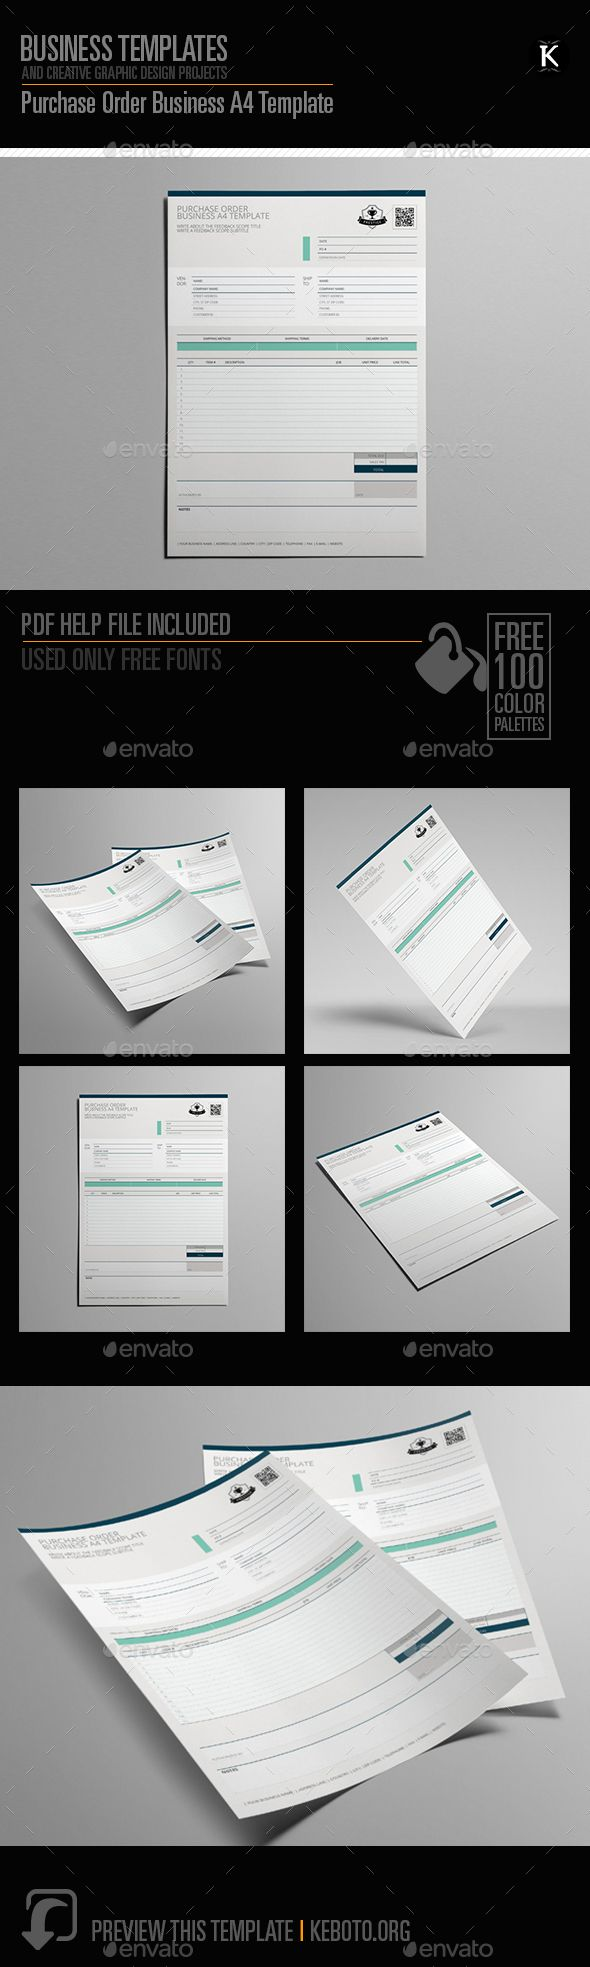 Purchase Order Business A4 Template Miscellaneous